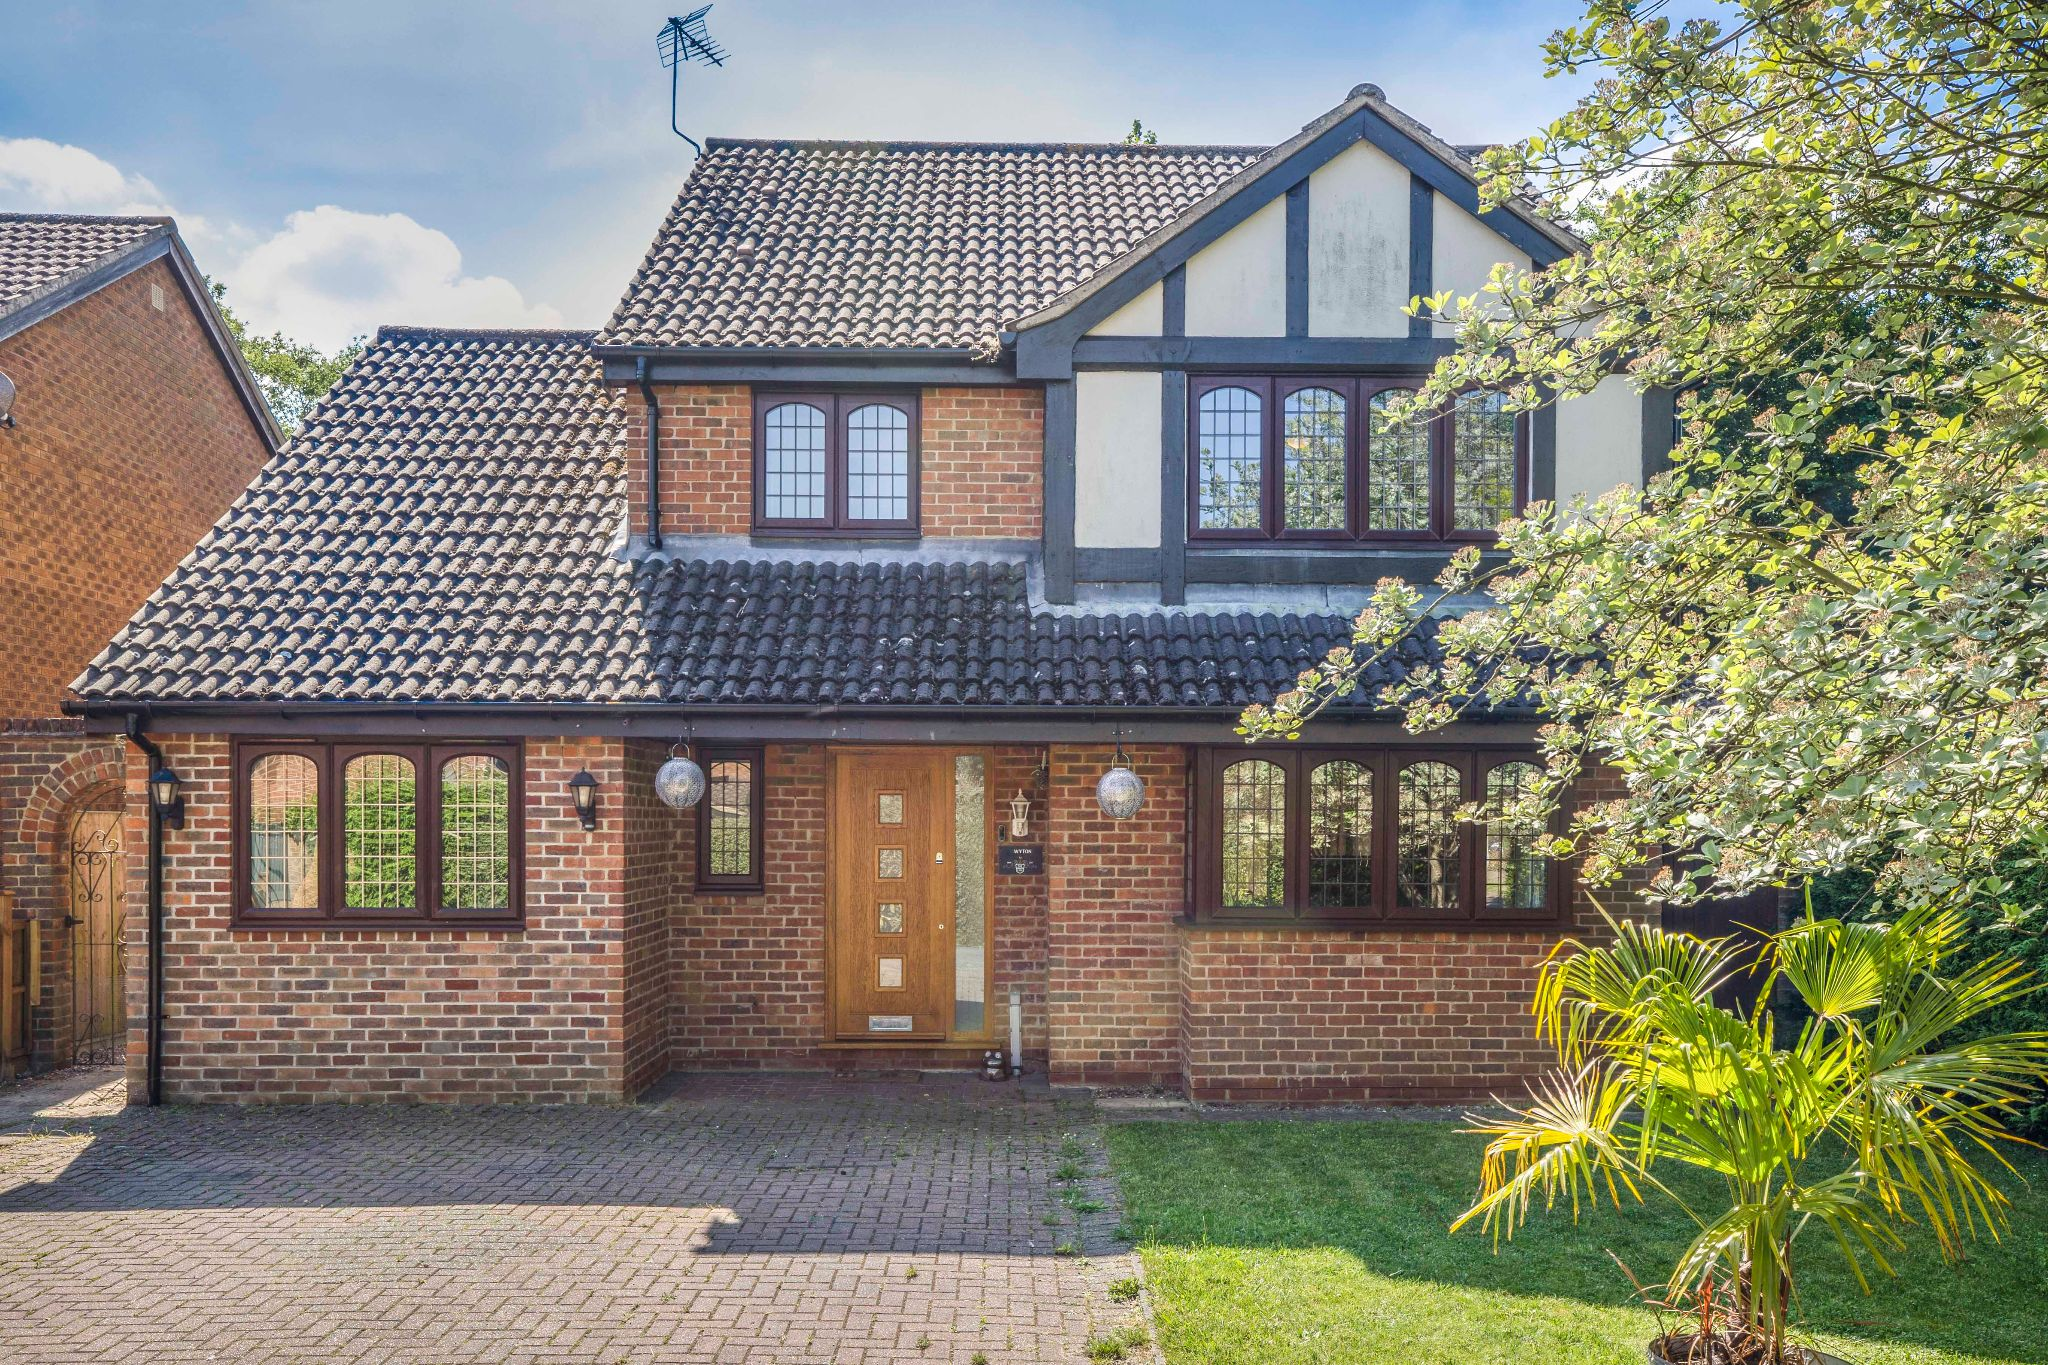 4 bedroom detached house For Sale in Welwyn Garden City - Property photograph